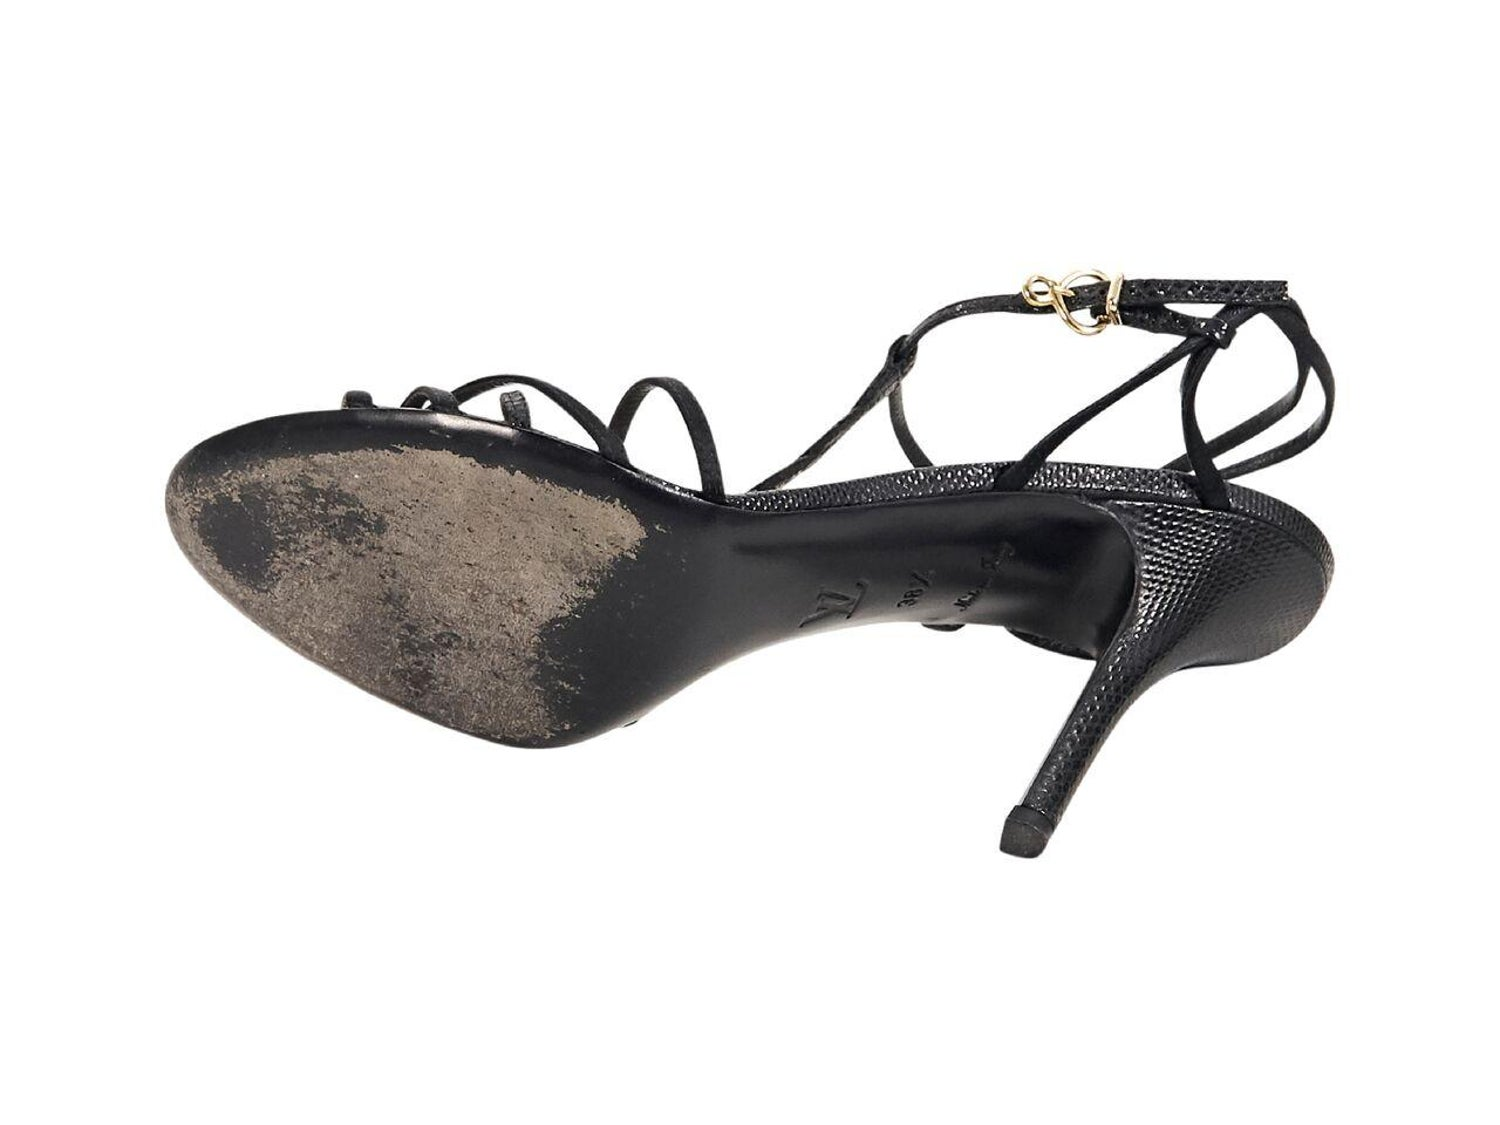 b1b0f5e492e2 Black Louis Vuitton Satin and Lizard Skin Sandals For Sale at 1stdibs